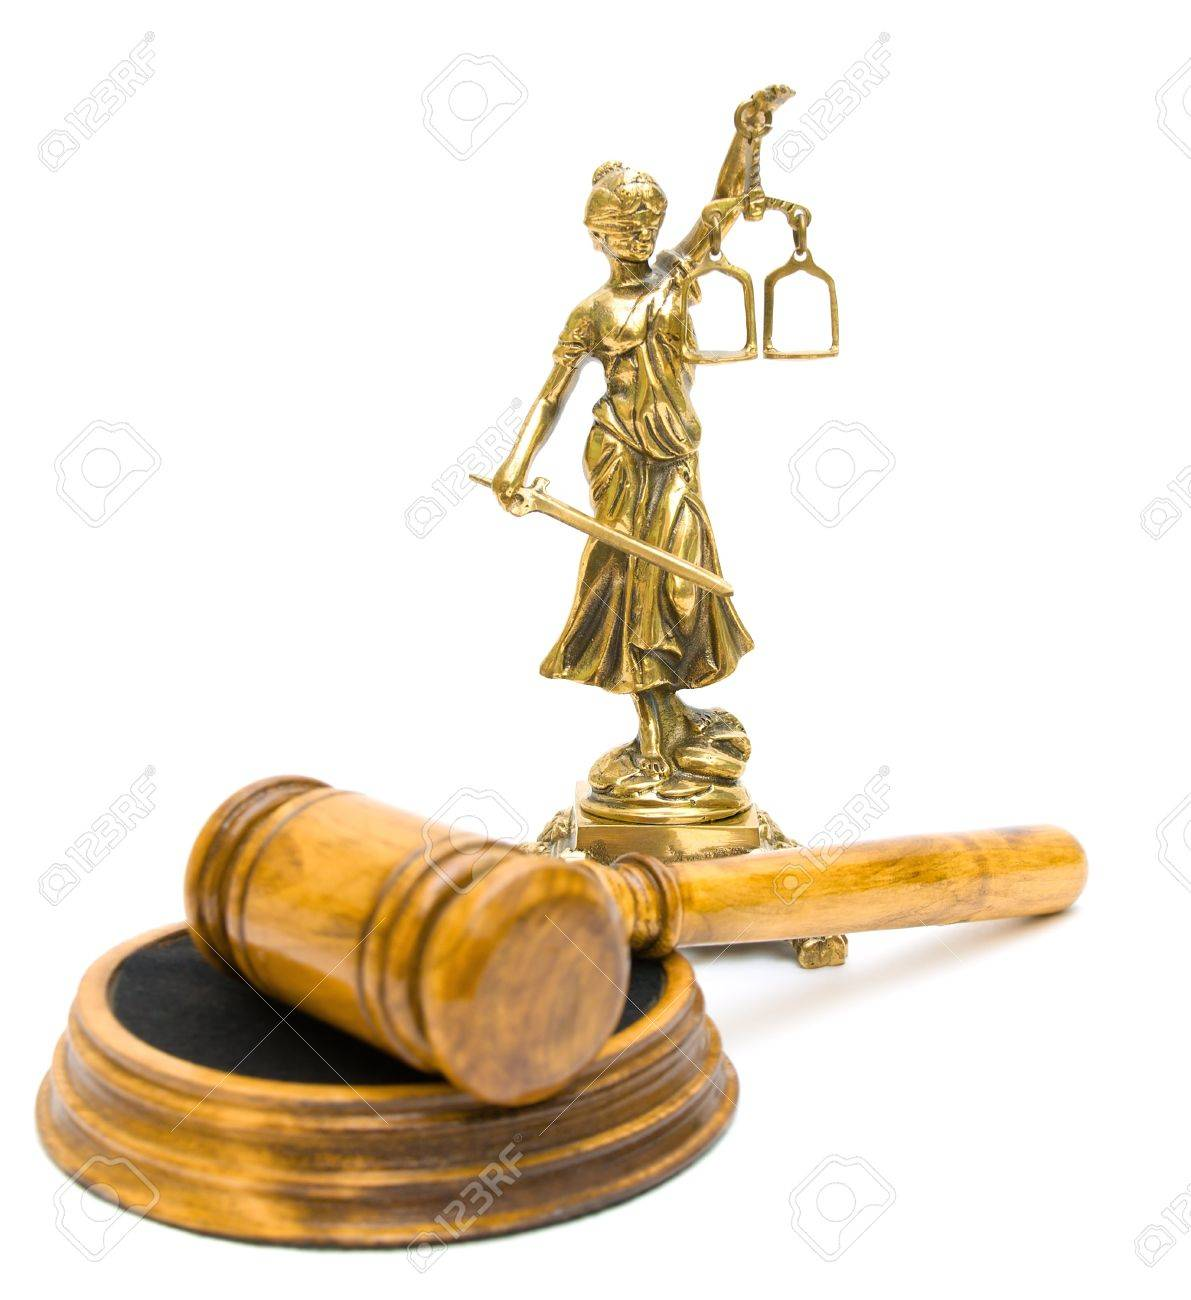 Indian Justice Statue Blind Justice Statue of